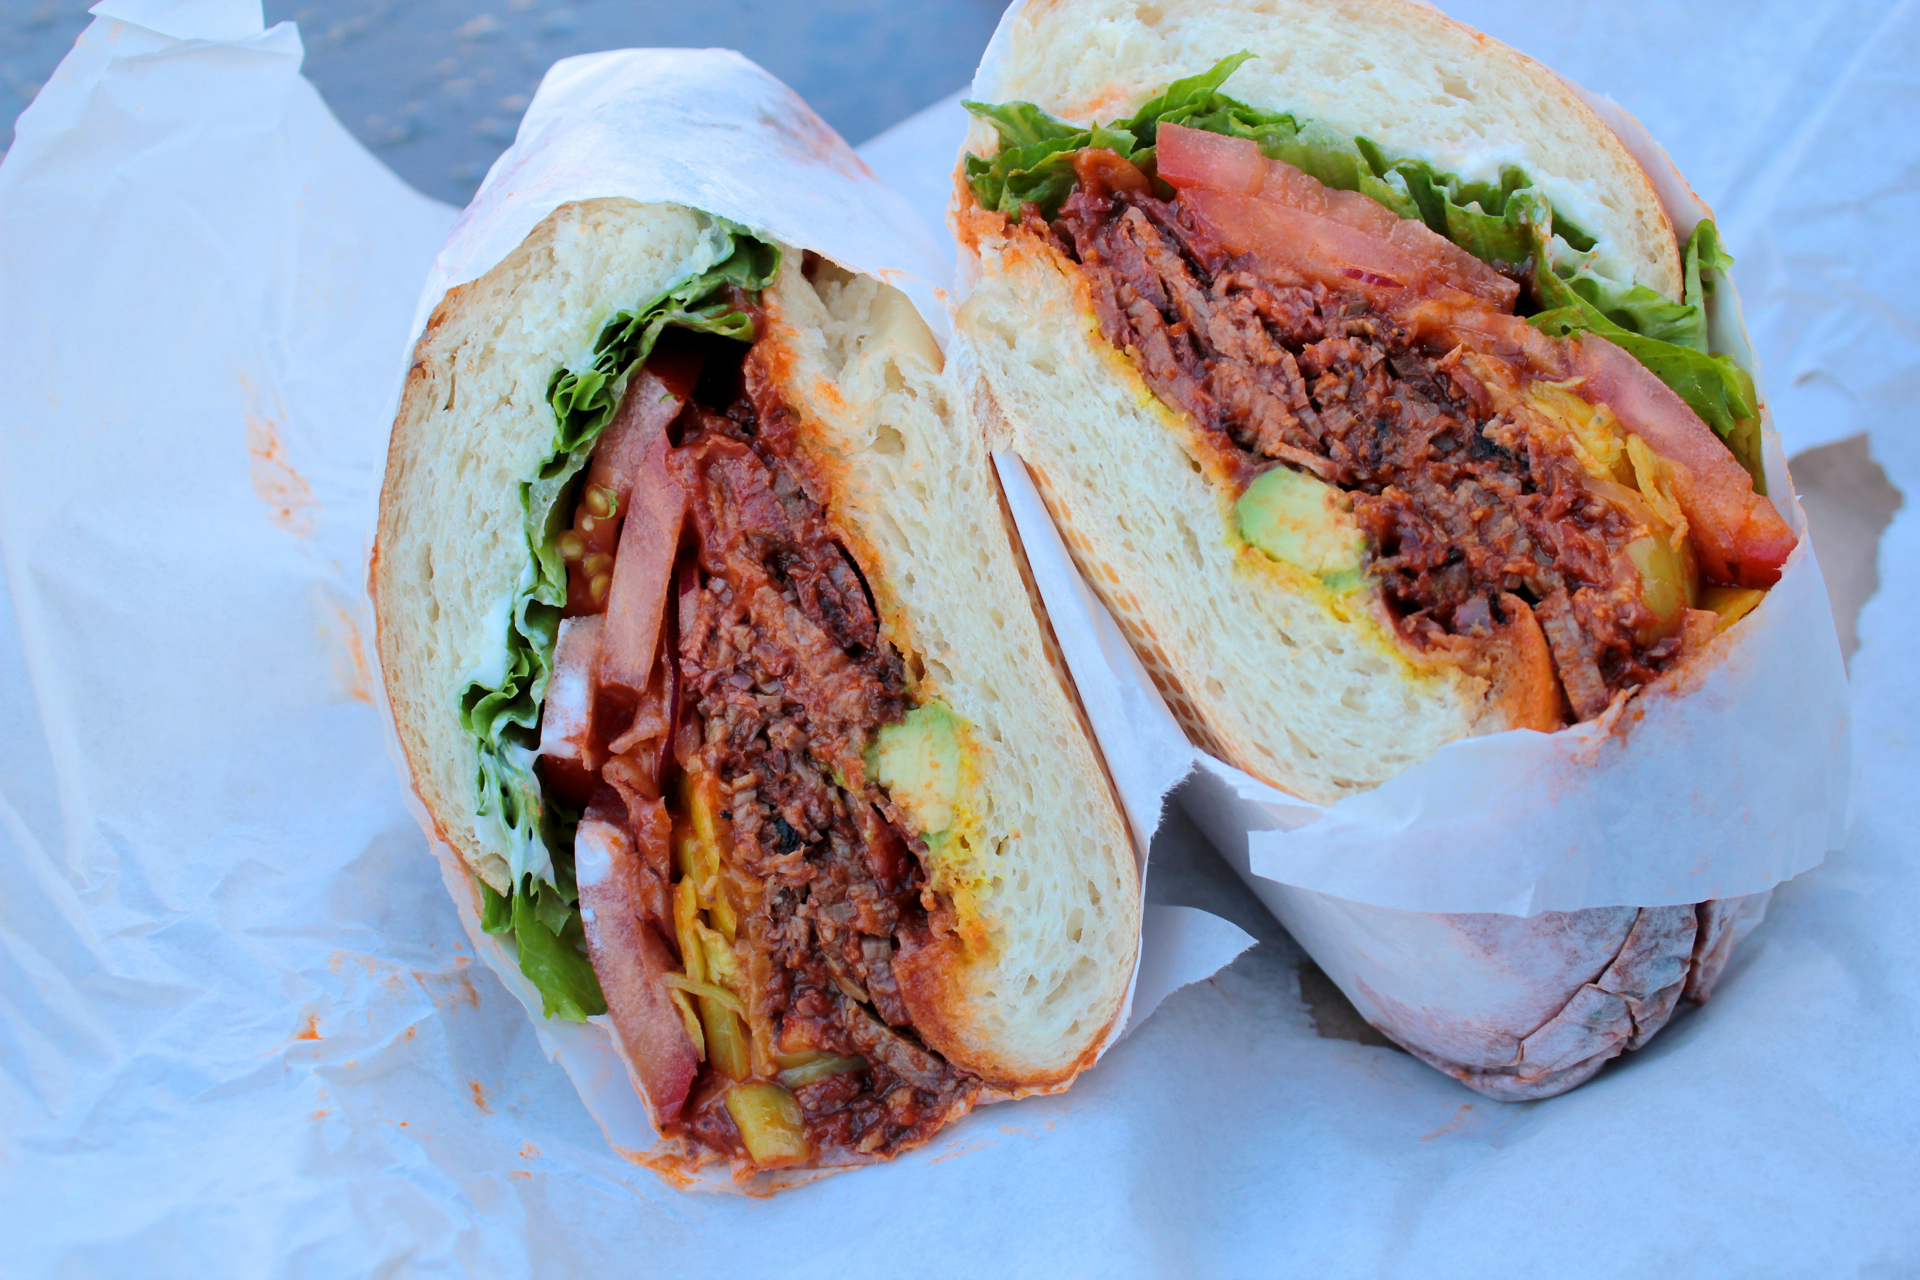 The Super Hero sandwich features Tri-Tip with barbecue sauce, bacon, cheddar cheese and avocado.